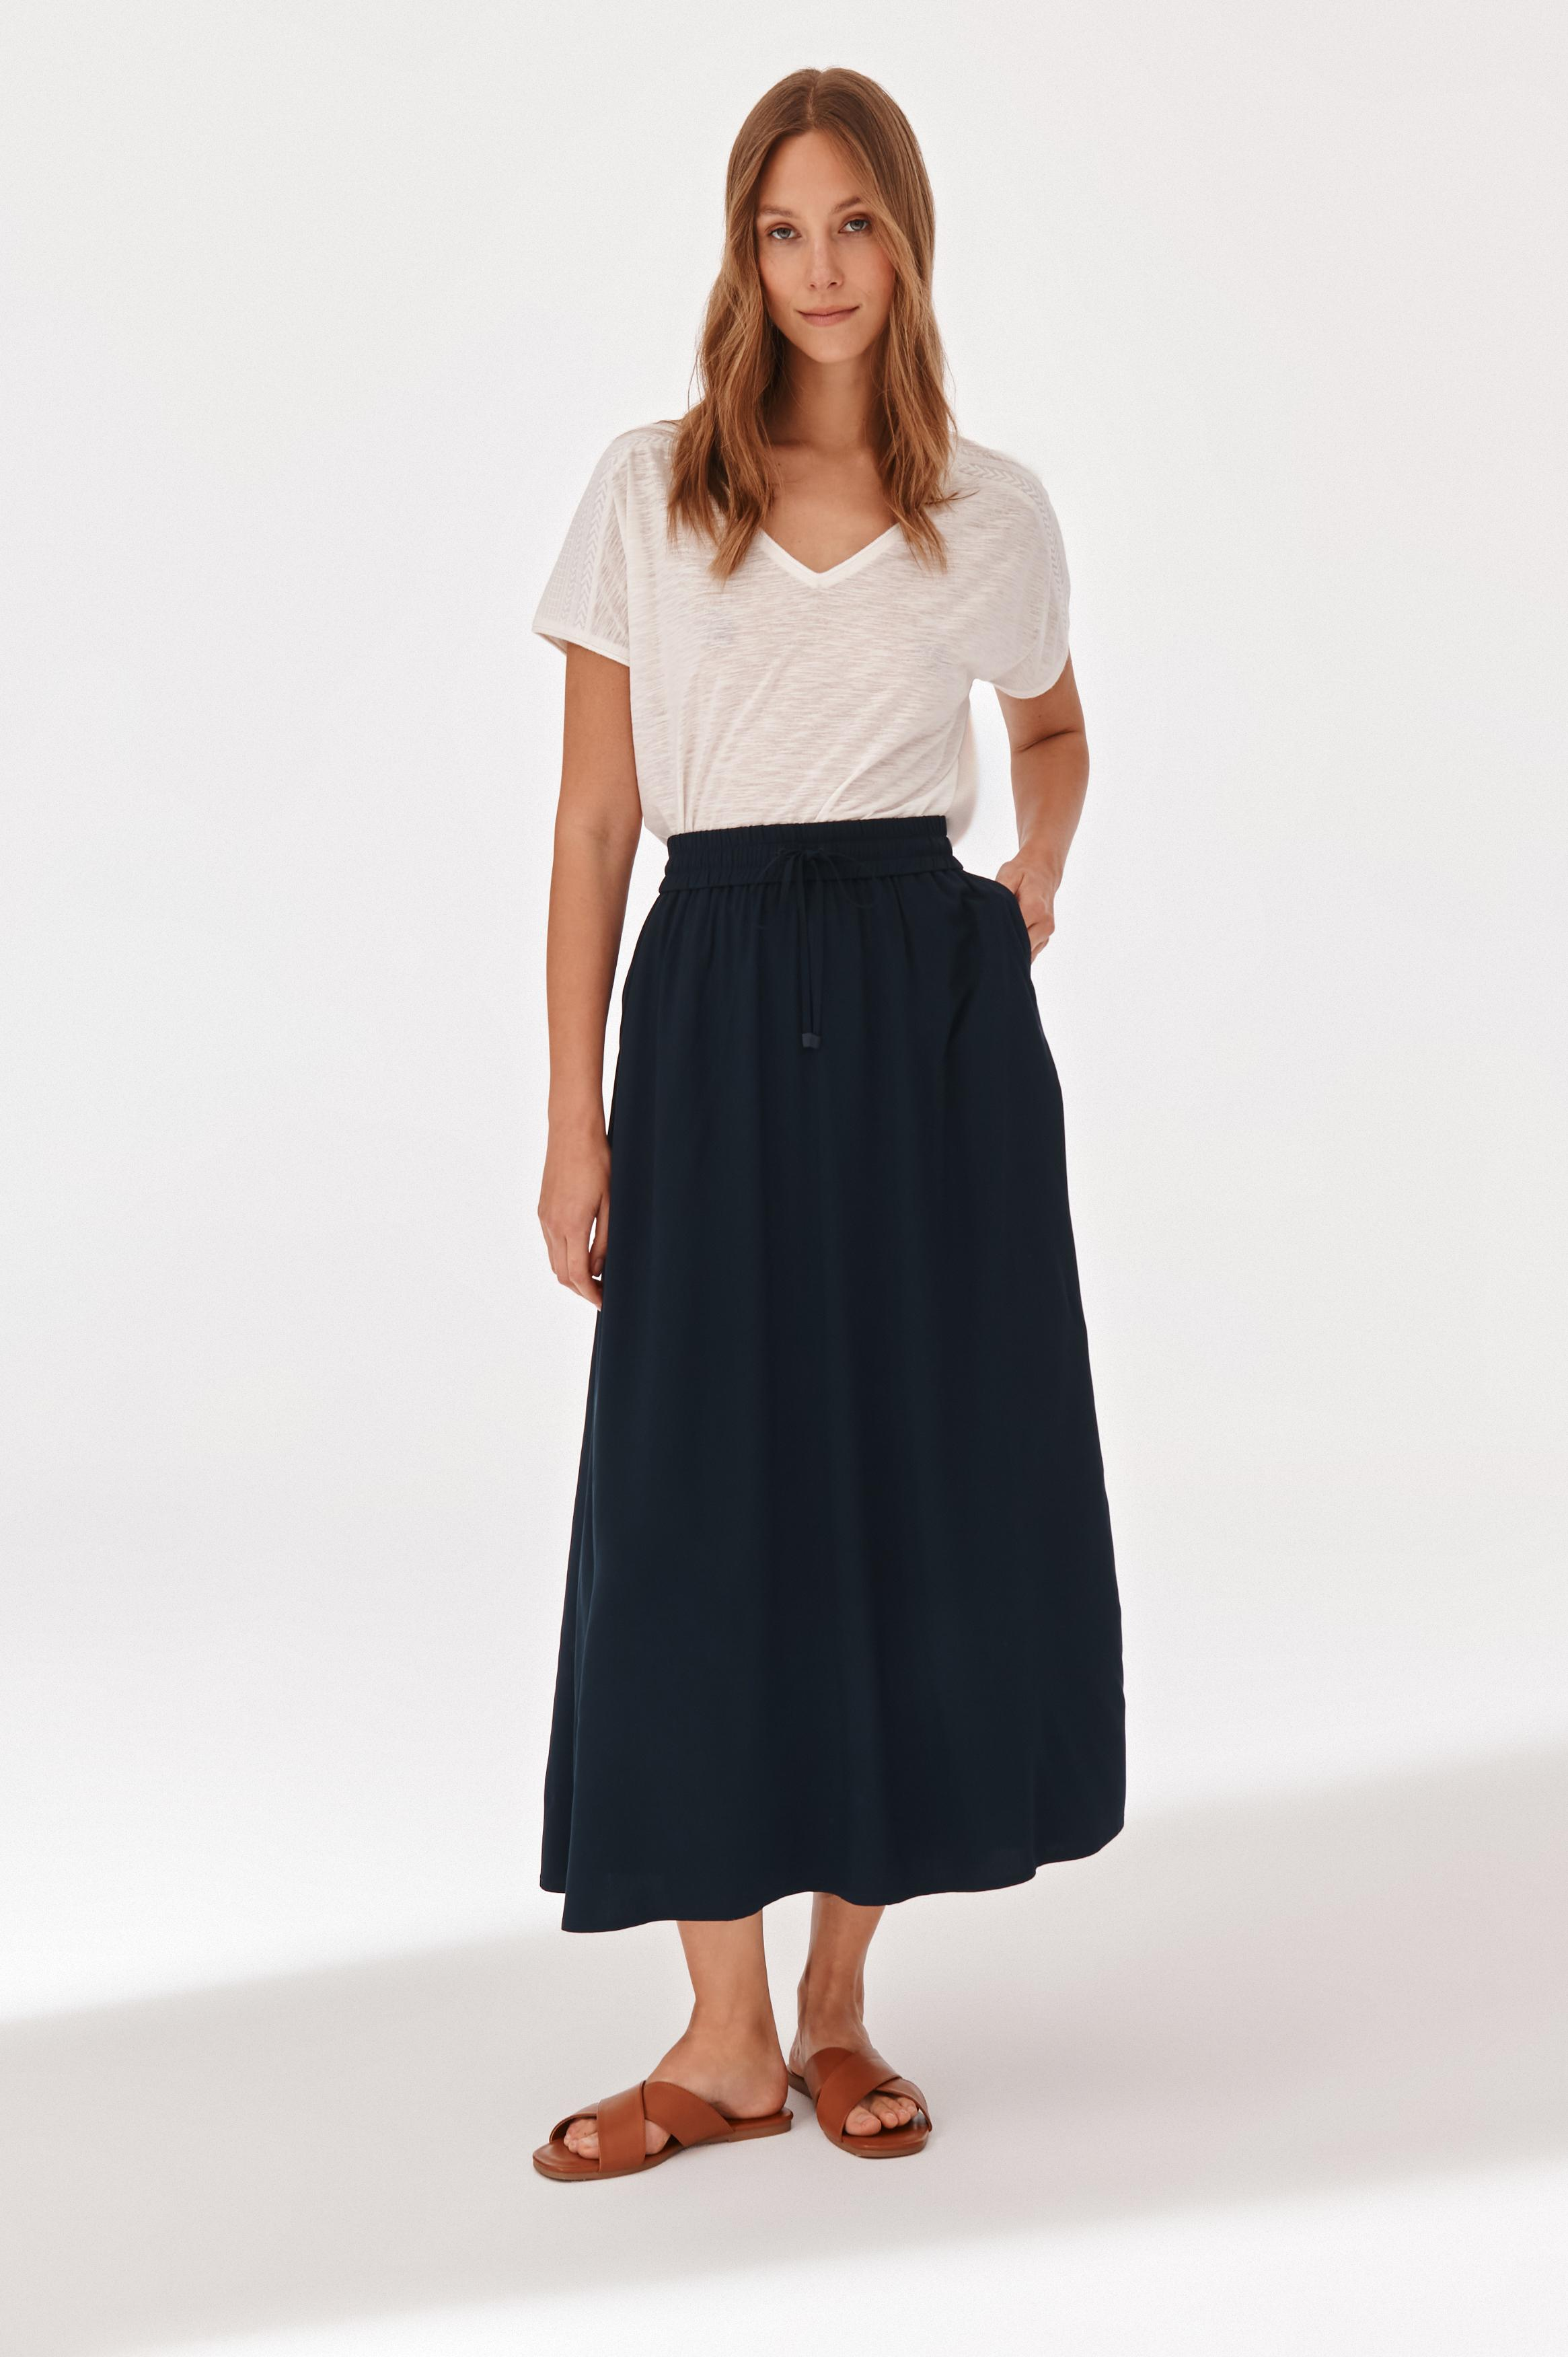 LADIES' MIDI SKIRT SAND